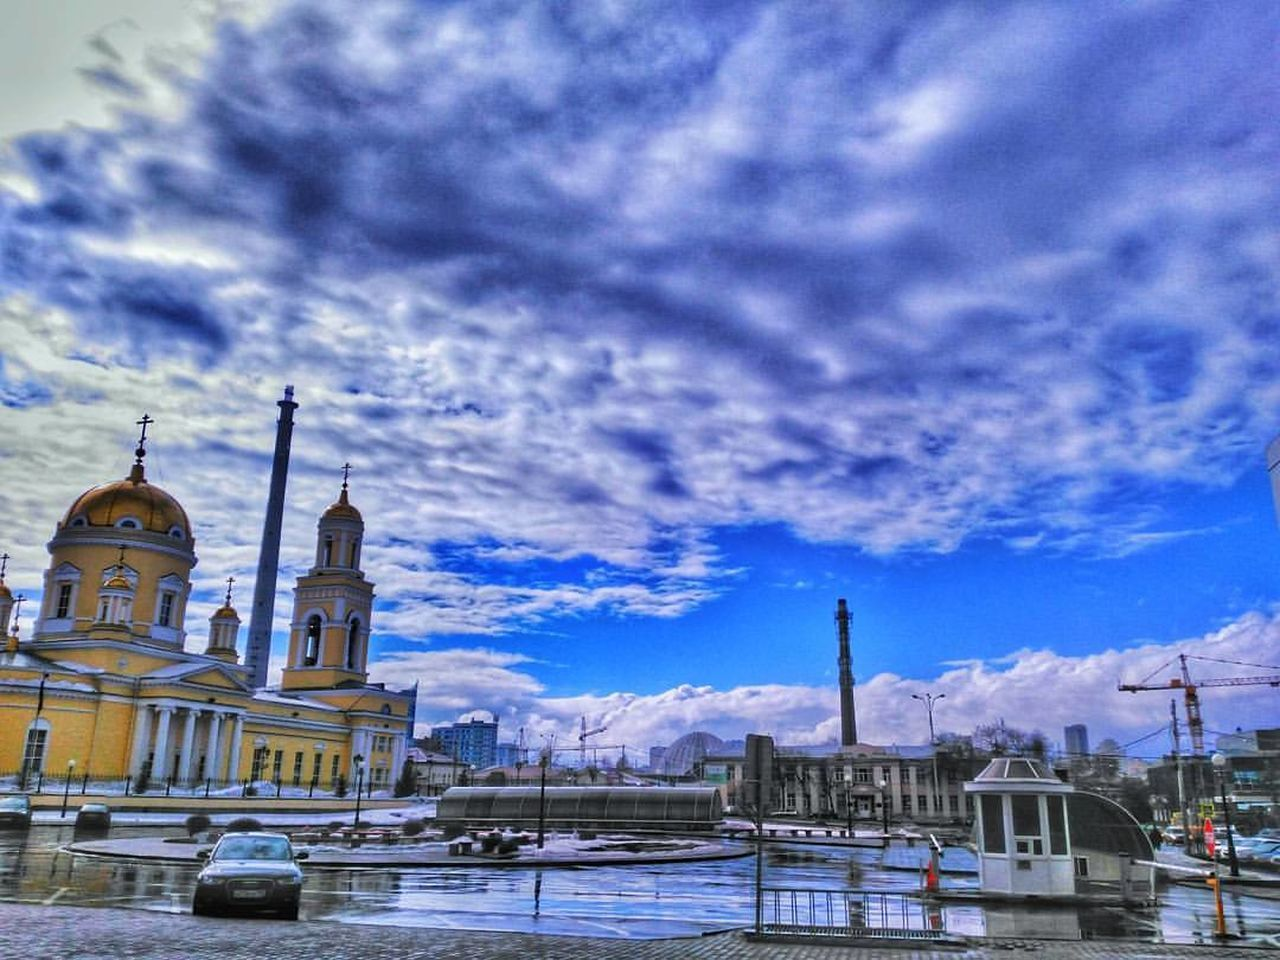 architecture, built structure, building exterior, cloud - sky, sky, religion, place of worship, spirituality, weather, outdoors, no people, transportation, dome, water, day, travel destinations, city, nature, cold temperature, snow